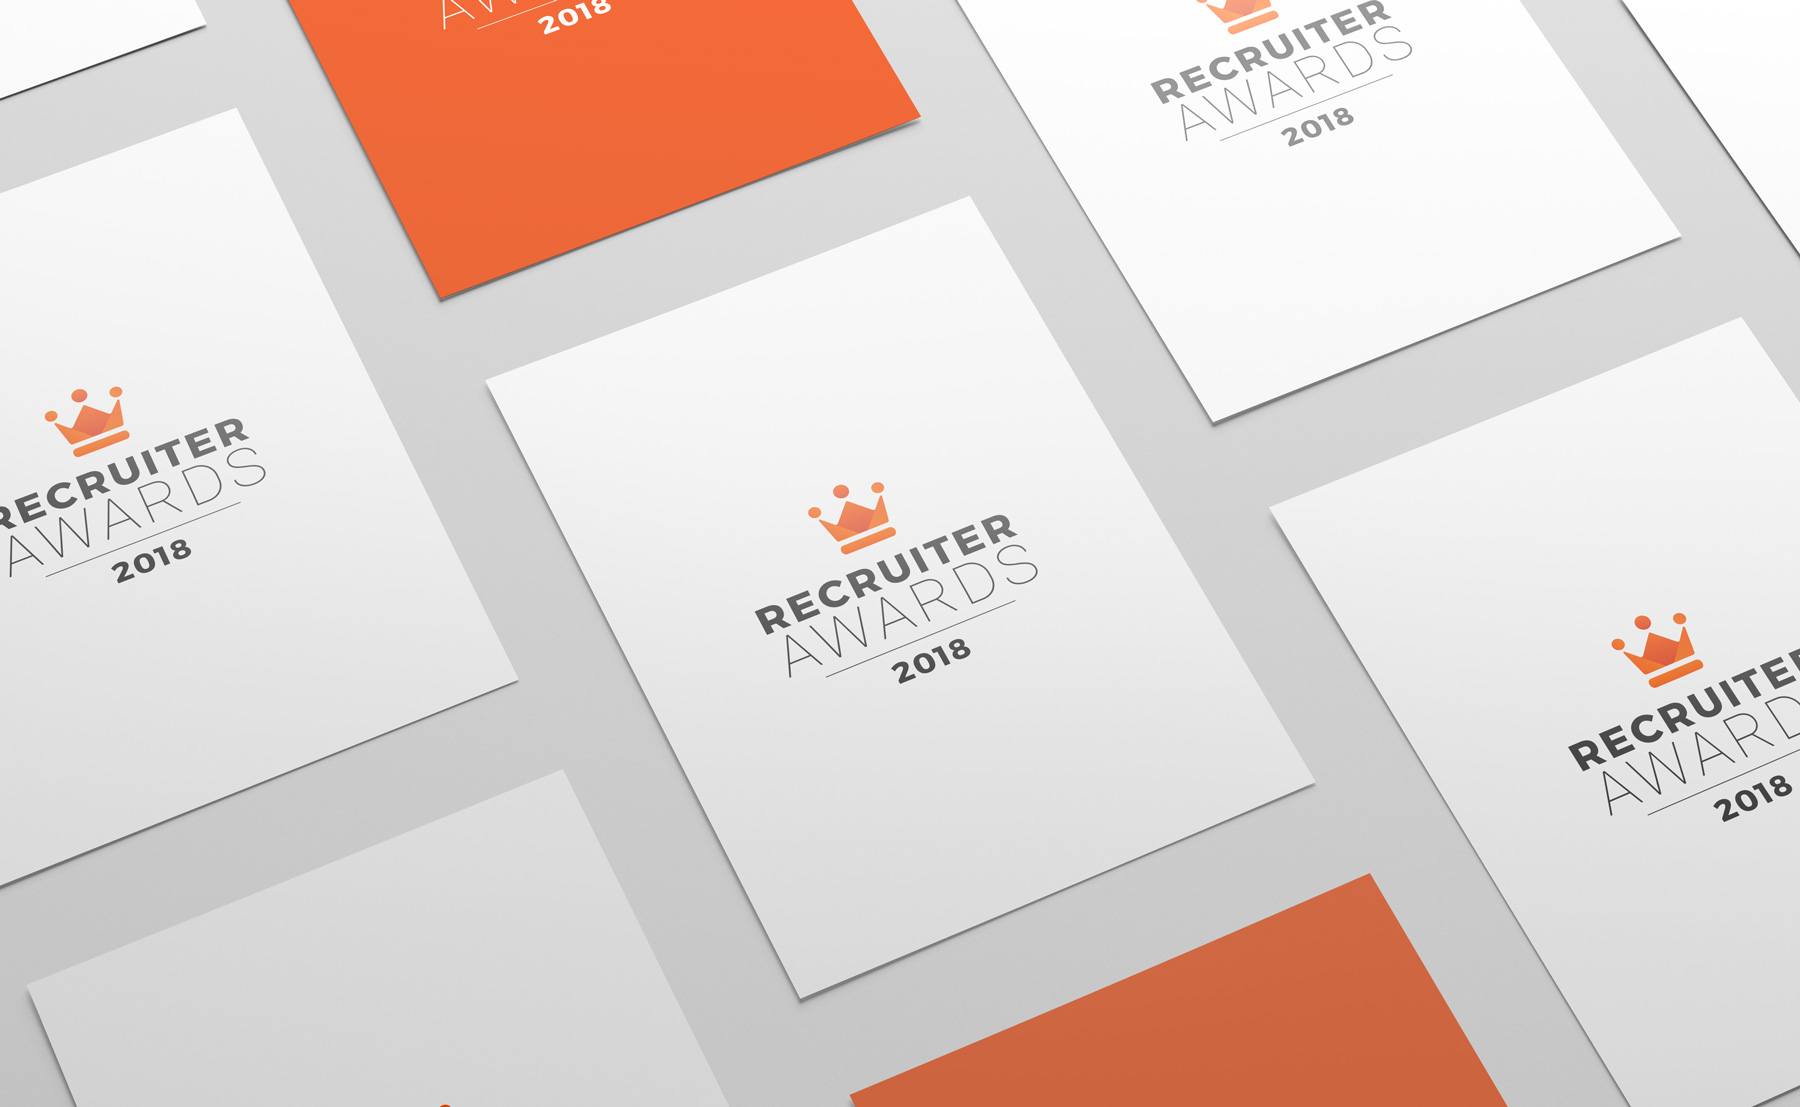 Matthijs-Schippers-recruiter-awards-poster-2018@2x.jpg